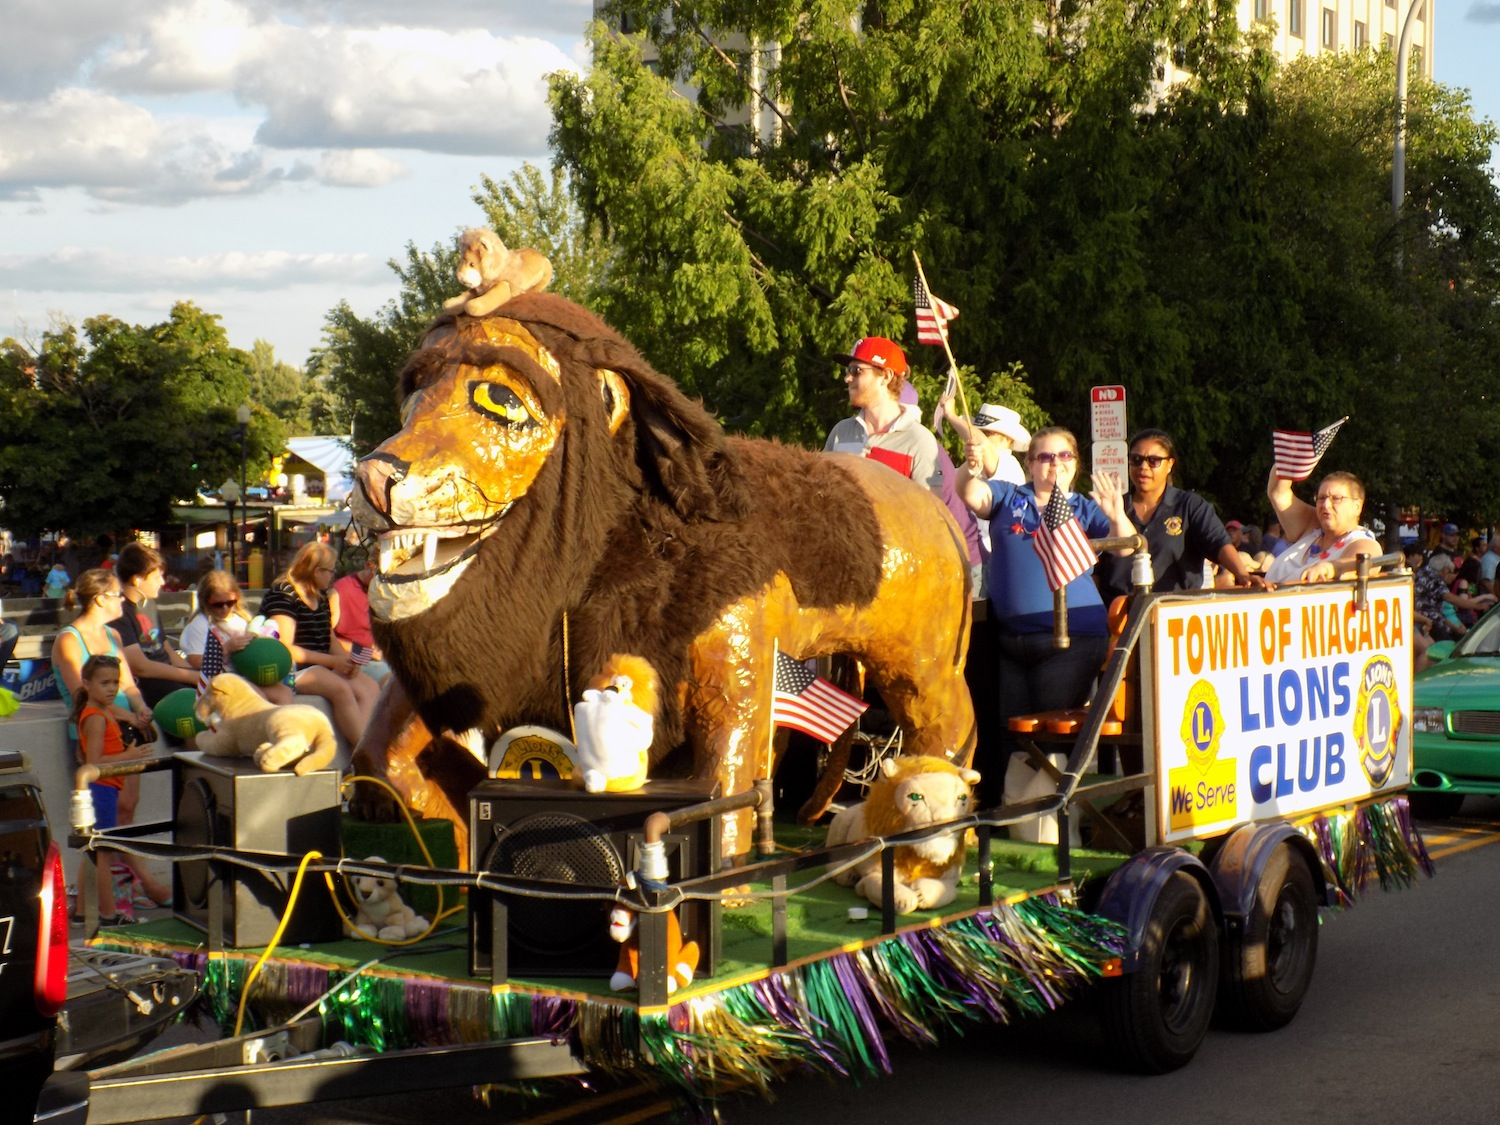 The Town of Niagara Lions Club's float in the Canal Fest Parade.